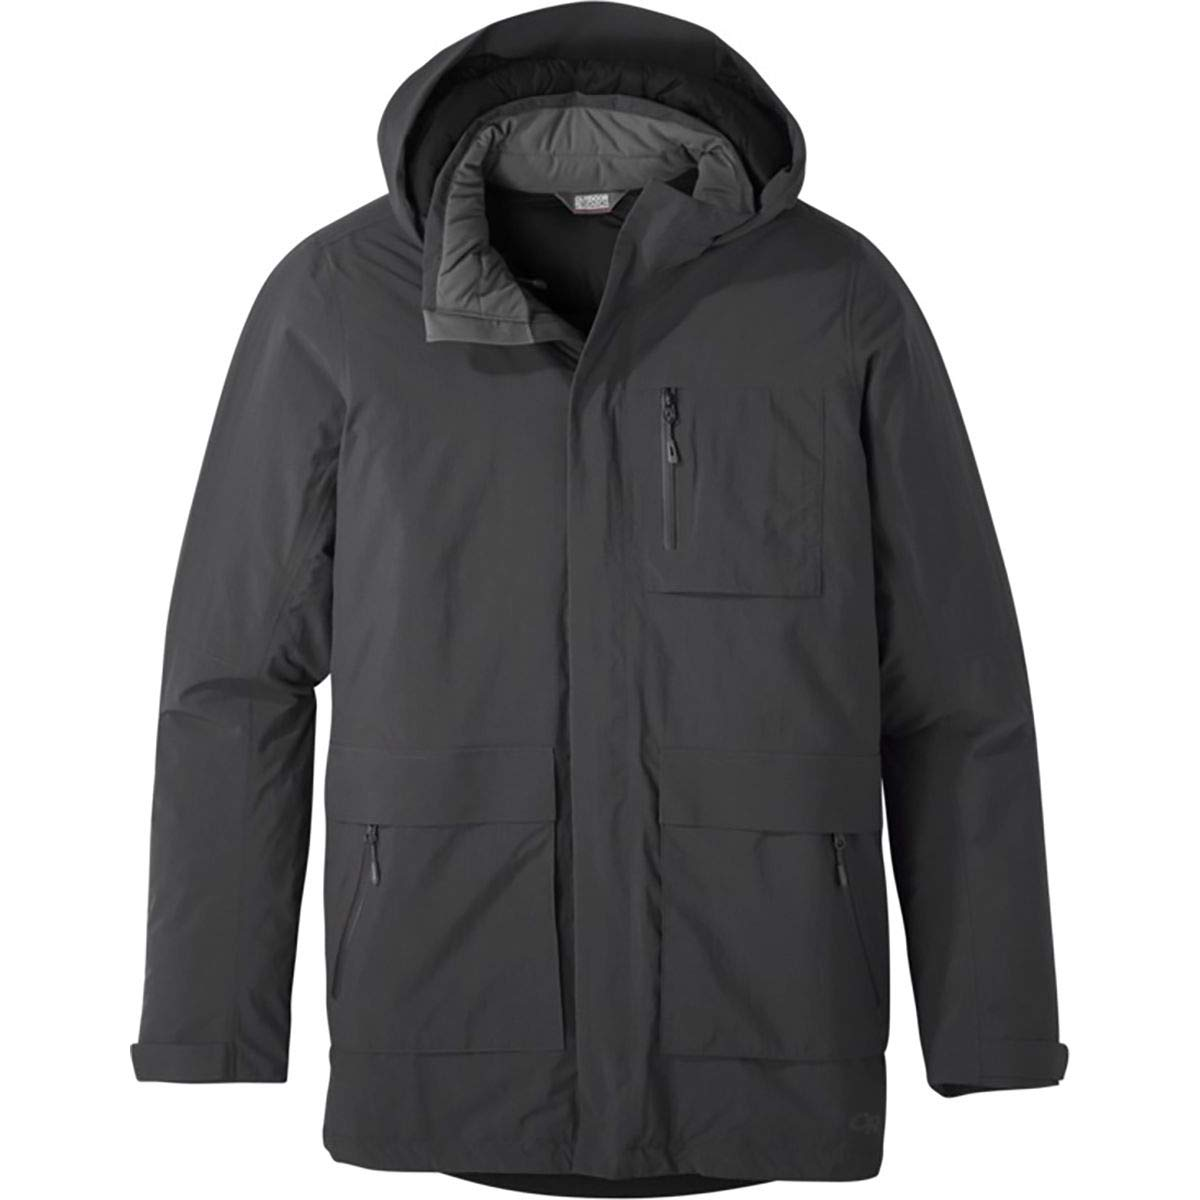 Outdoor Research Prologue Dorval Insulated Parka - Men's image 1